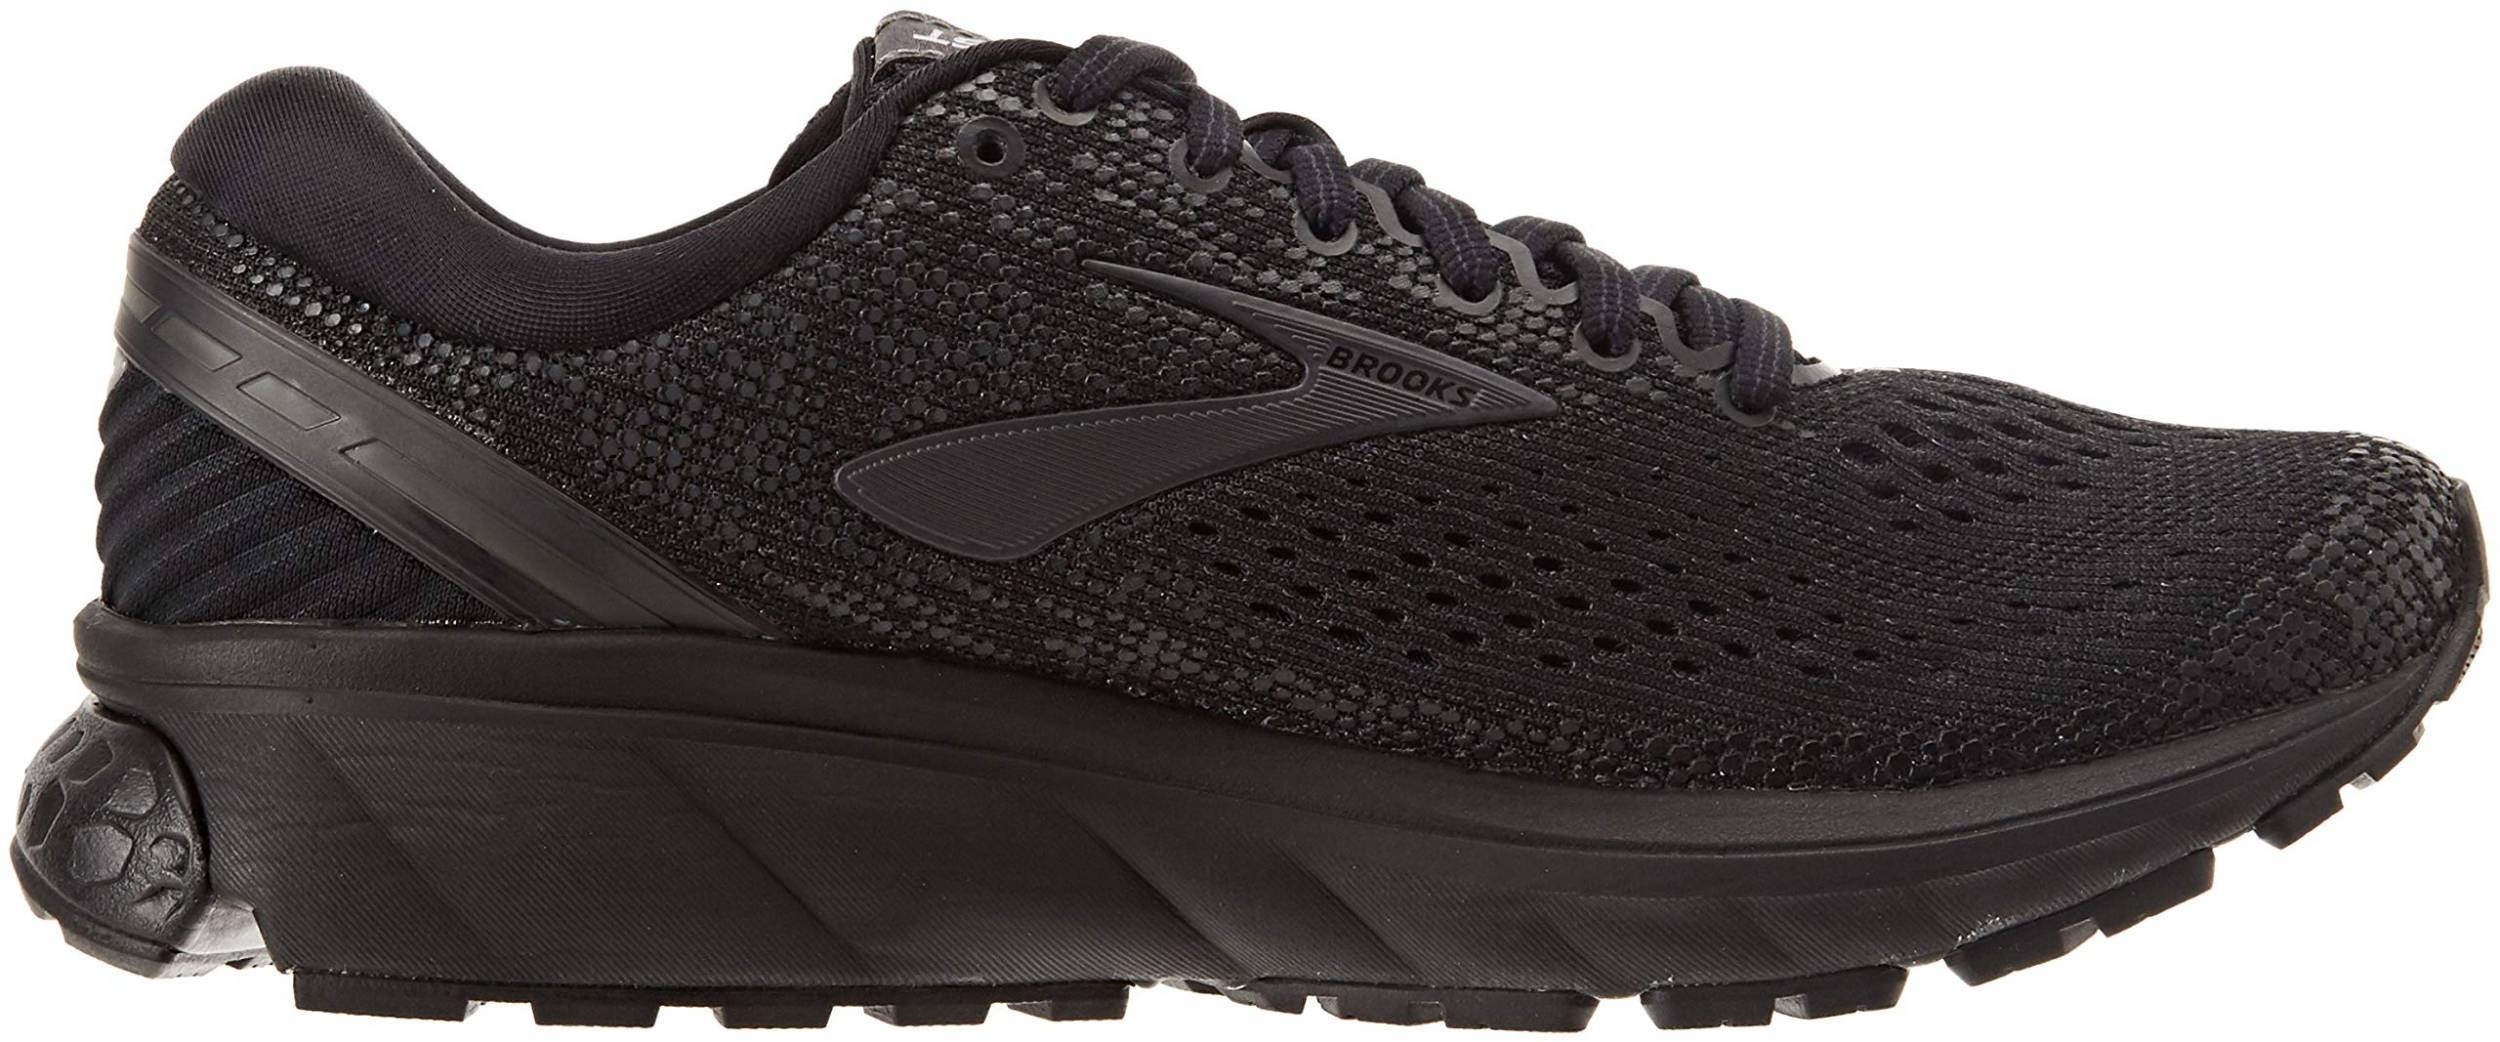 Save 20% on Wide Brooks Running Shoes